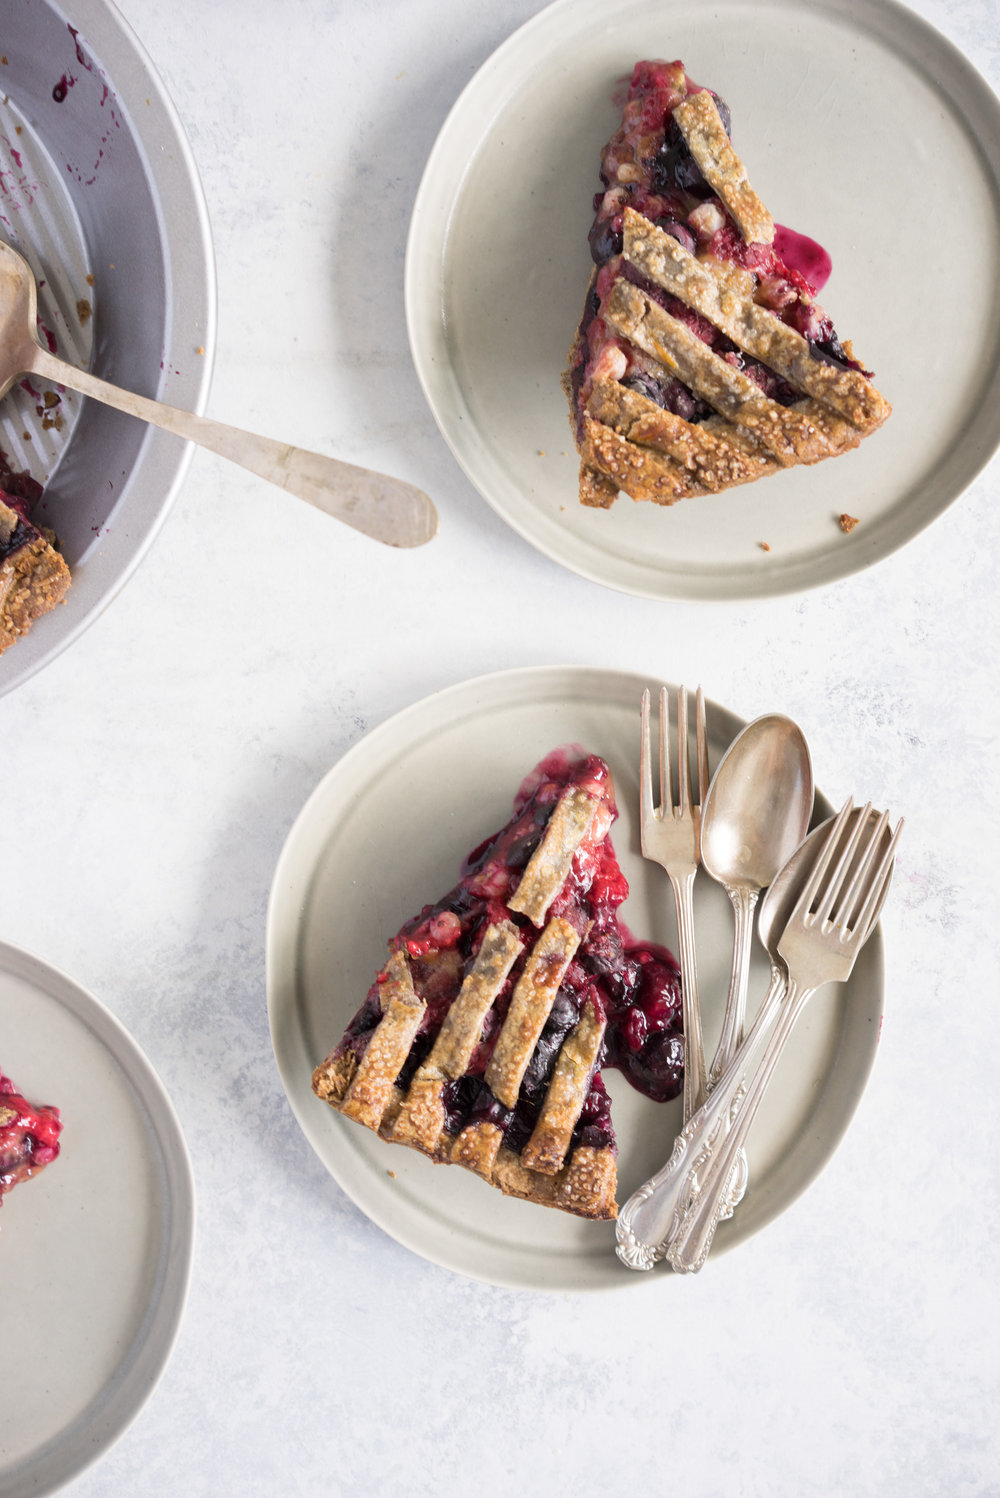 Blueberry, raspberry and white currant pie with buckwheat crust - the perfect 4th of july pie, or change the lattice up and you have the perfect summer dessert!